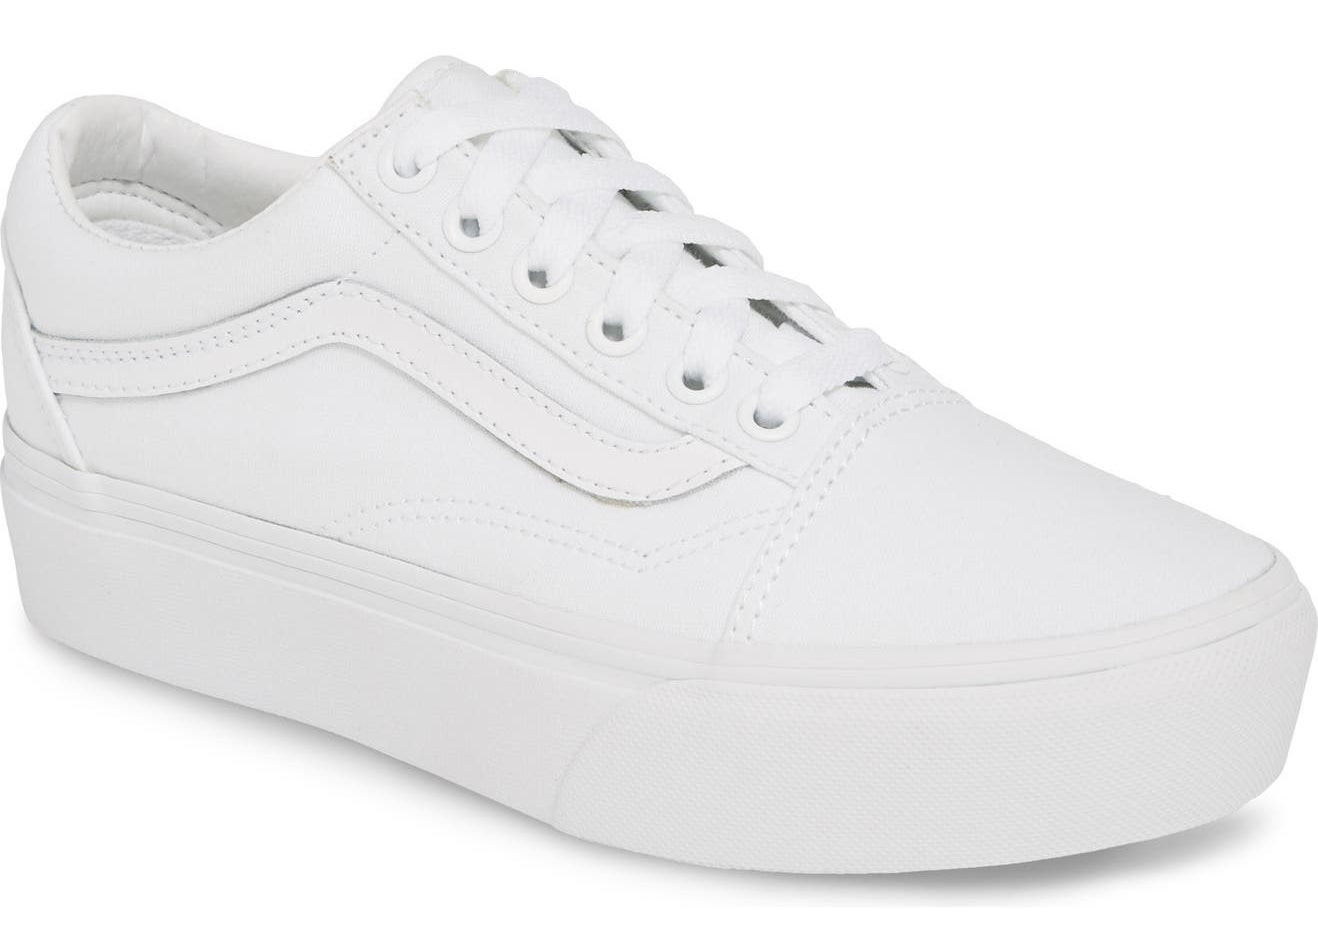 The shoe in white